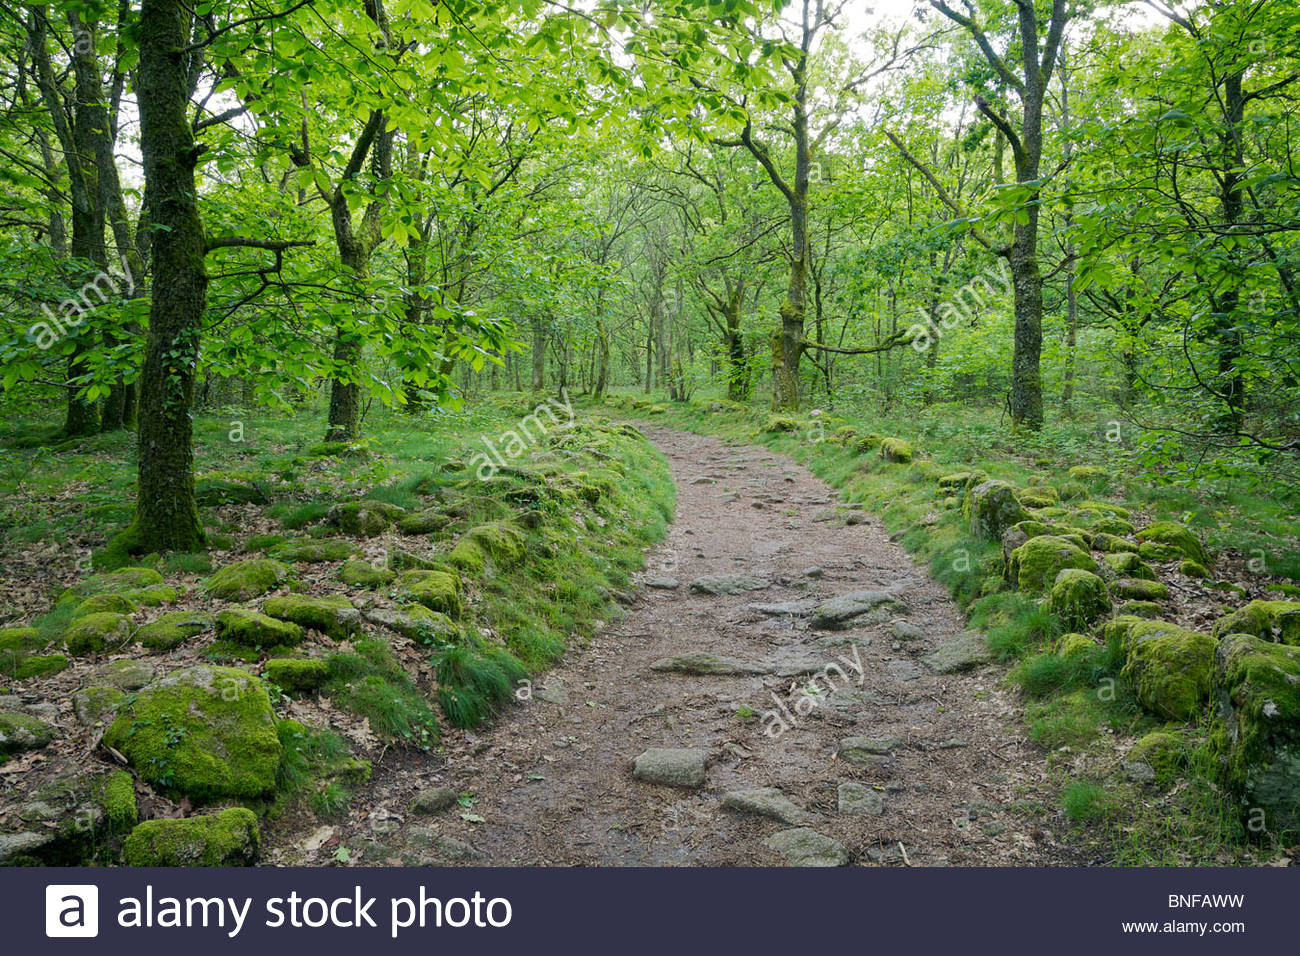 Curve in a dirt trail through a beautiful hardwood forest in rural France. Near Toulx-Sainte-Croix, La Creuse, Limousin, - Stock Image